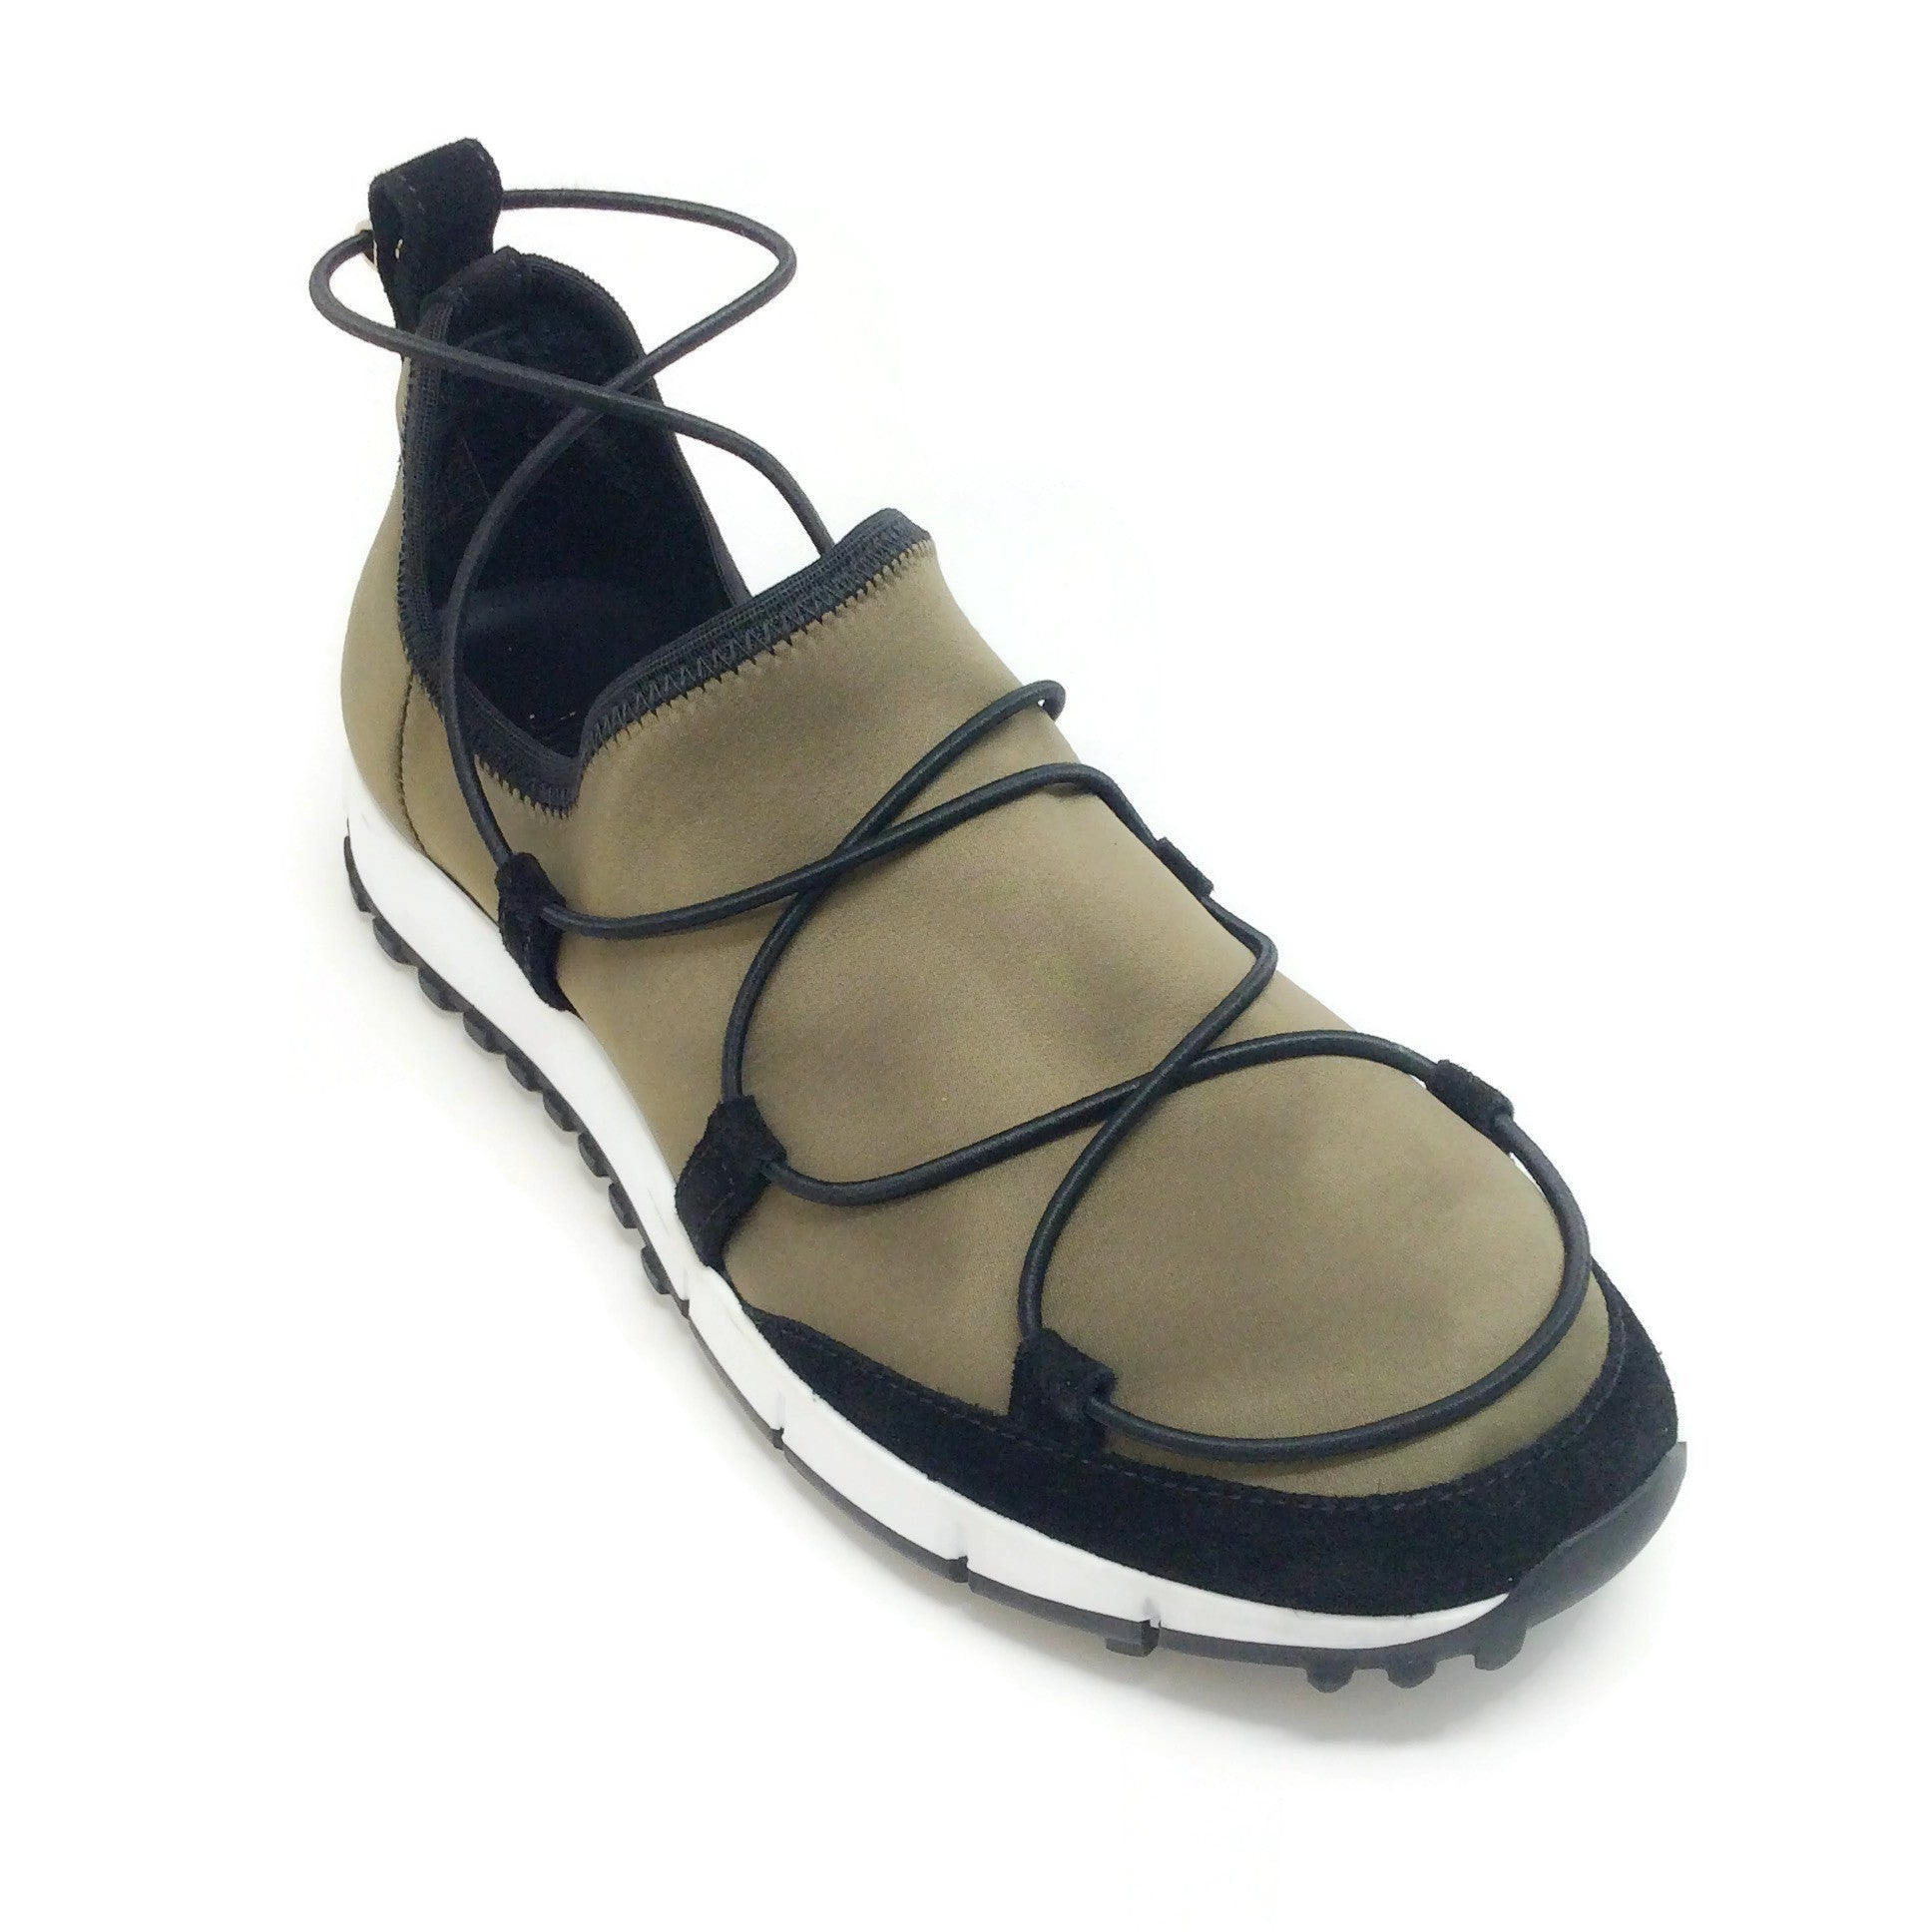 Jimmy Choo Olive / Black Andrea Sneakers